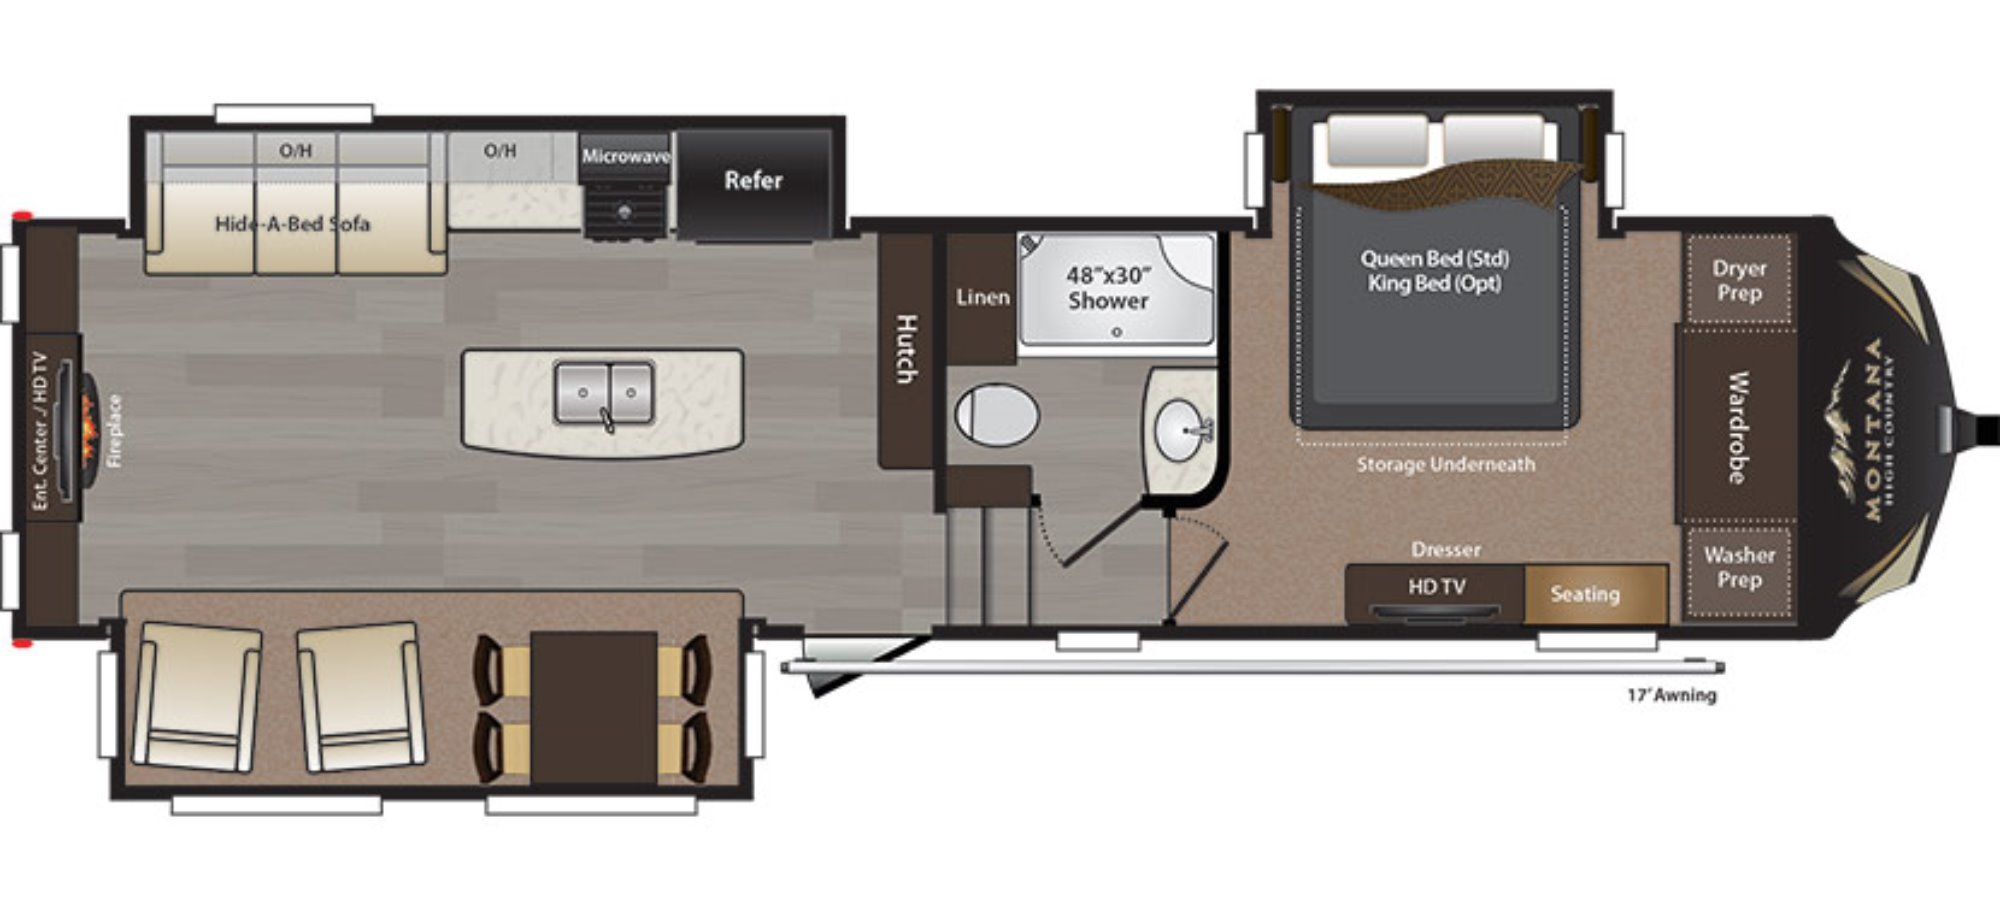 View Floor Plan for 2016 KEYSTONE MONTANA HIGH COUNTRY 310RE